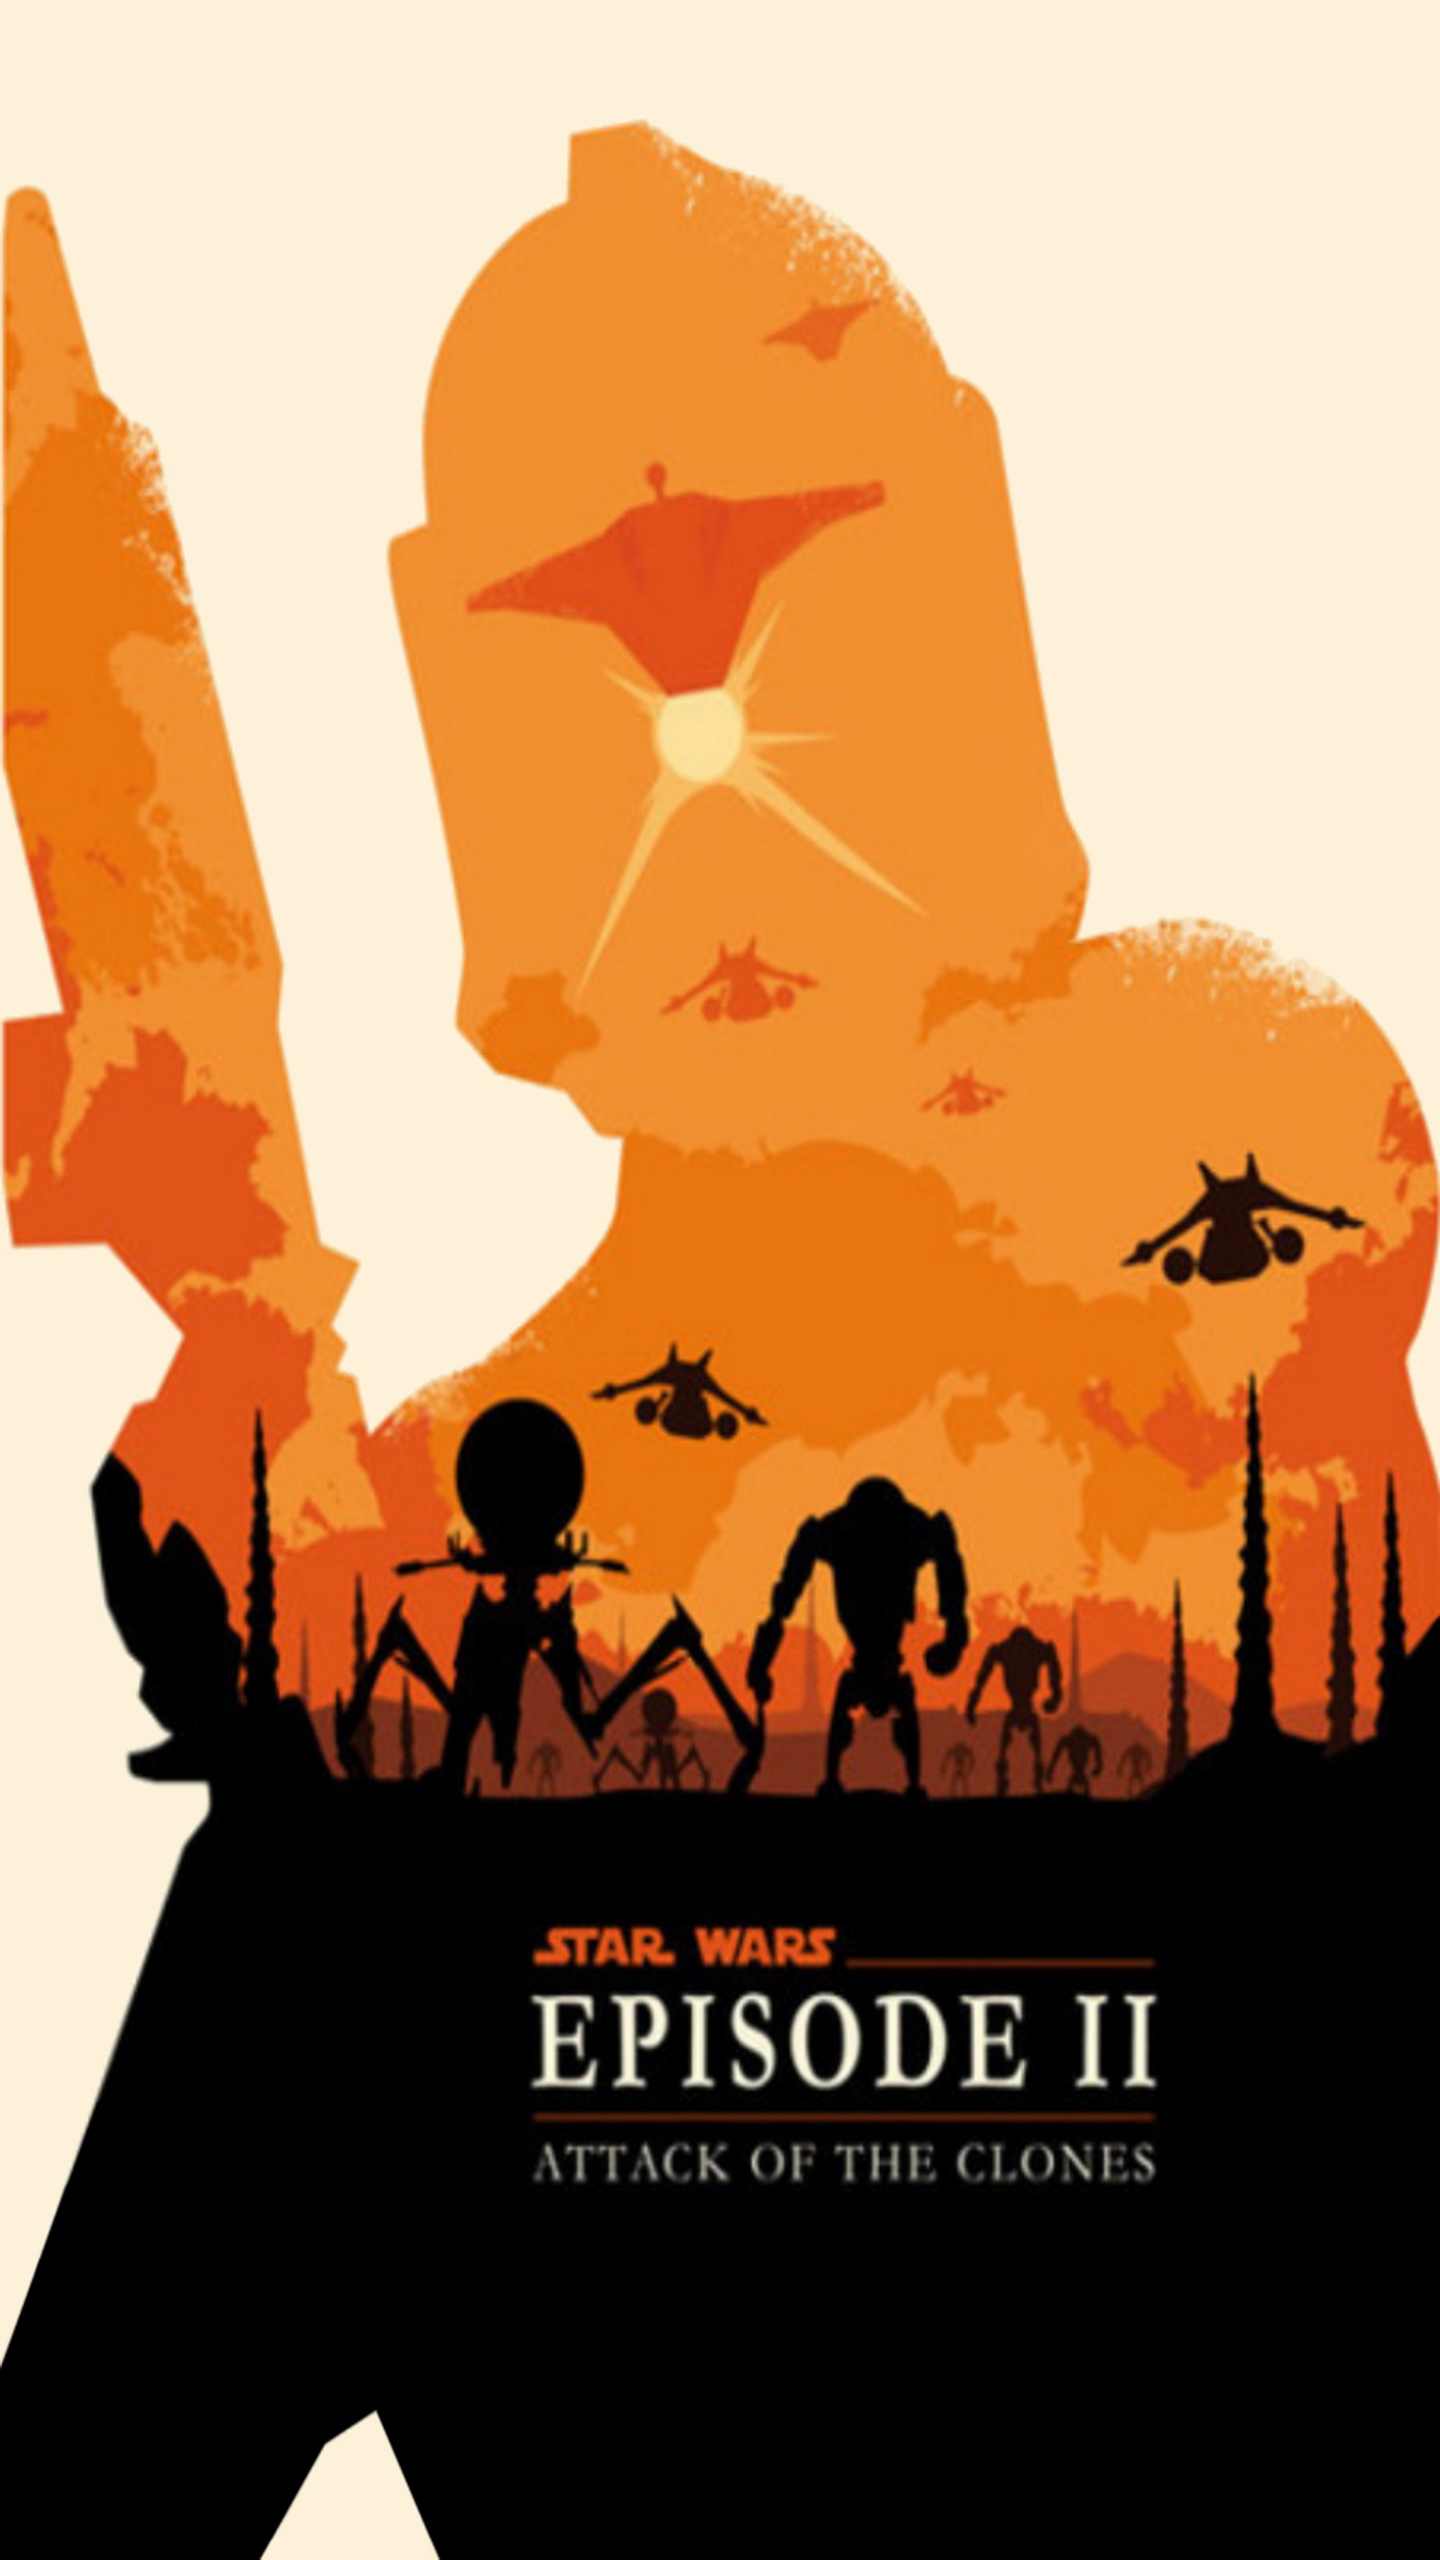 Free Download Star Wars Episode Ii Attack Of The Clones Galaxy